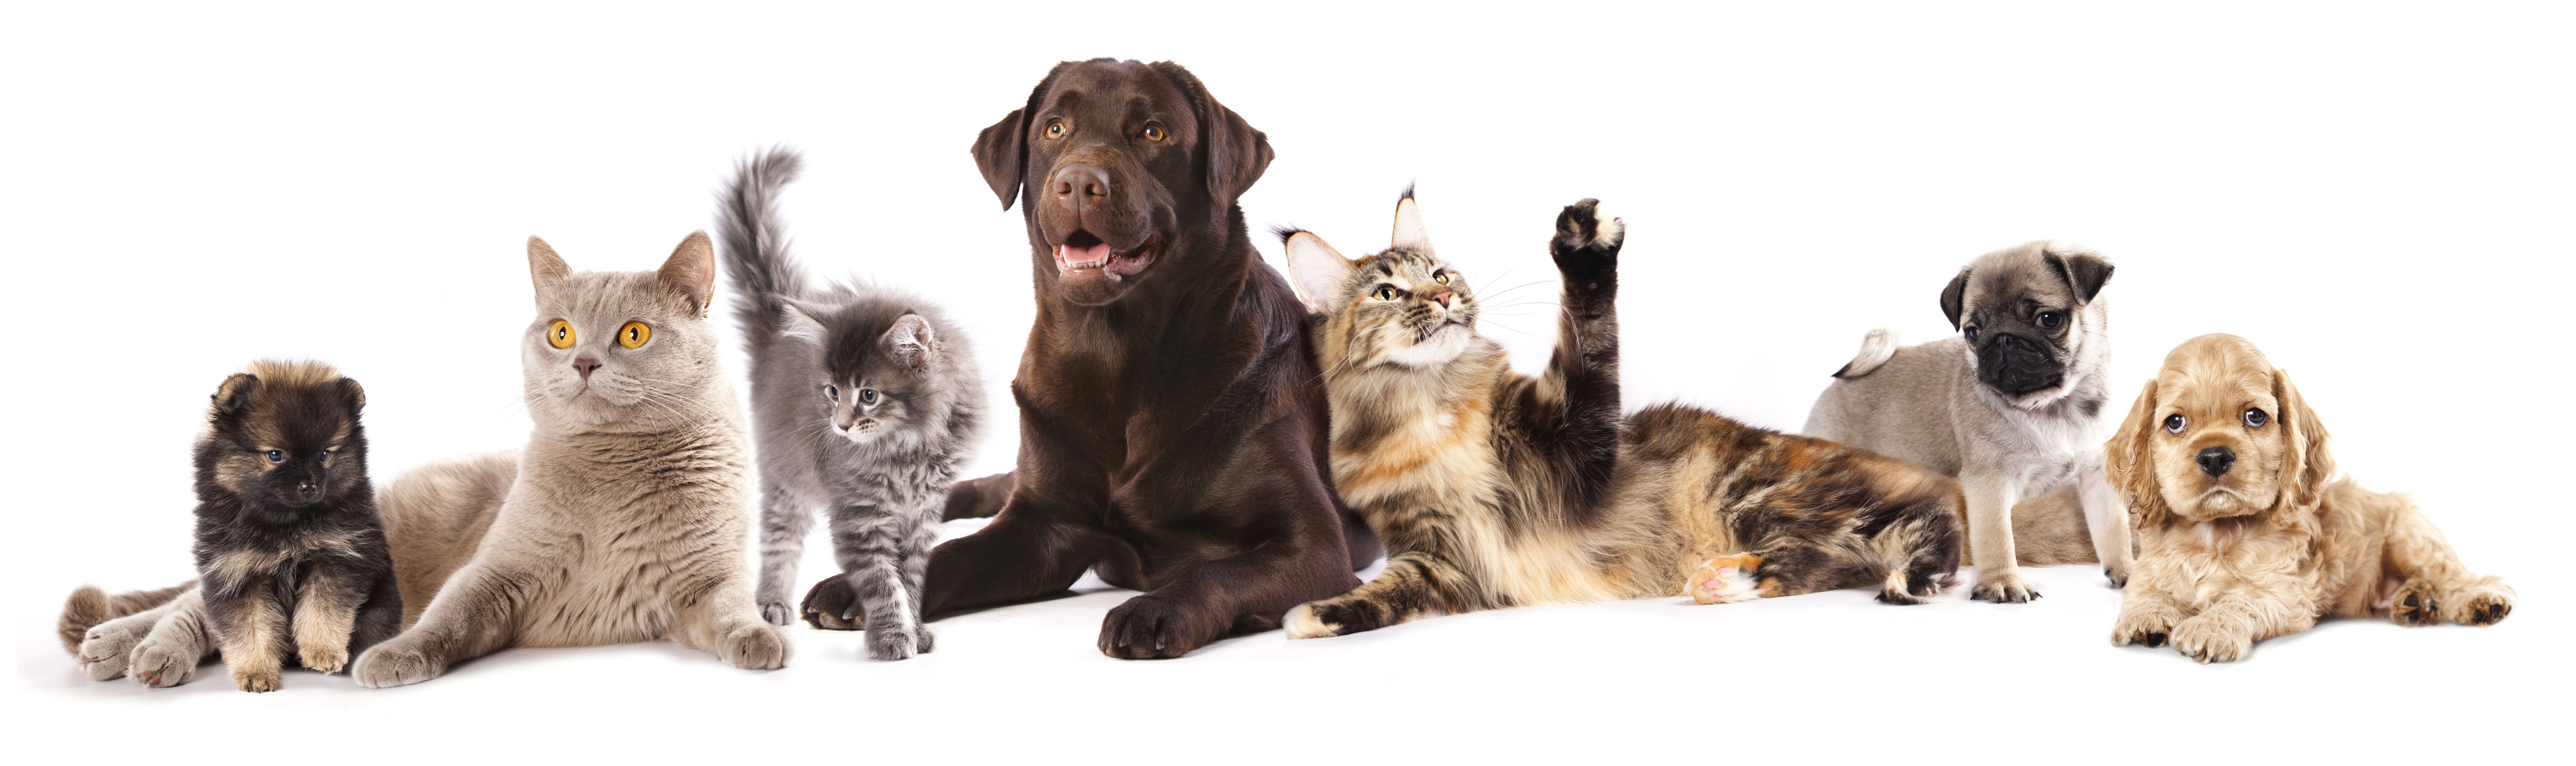 cats and dogs Full HD Wallpaper and Background Image  6729x2000  ID:690832